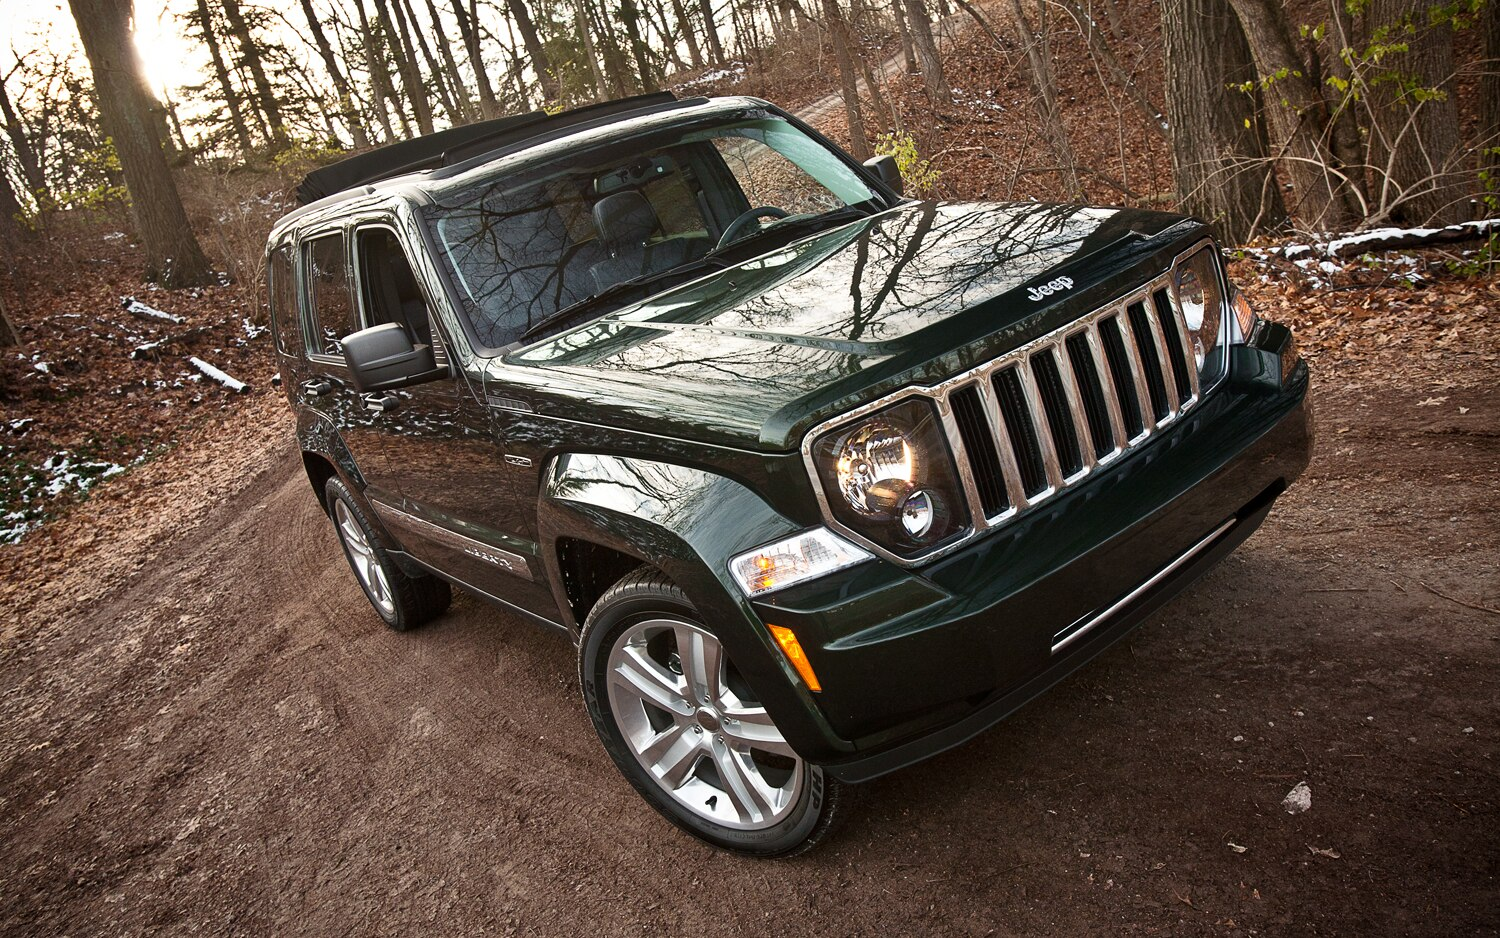 Jeep Wrangler Top View >> 2012 Jeep Liberty Limited Jet Edition - Editors' Notebook - Automobile Magazine